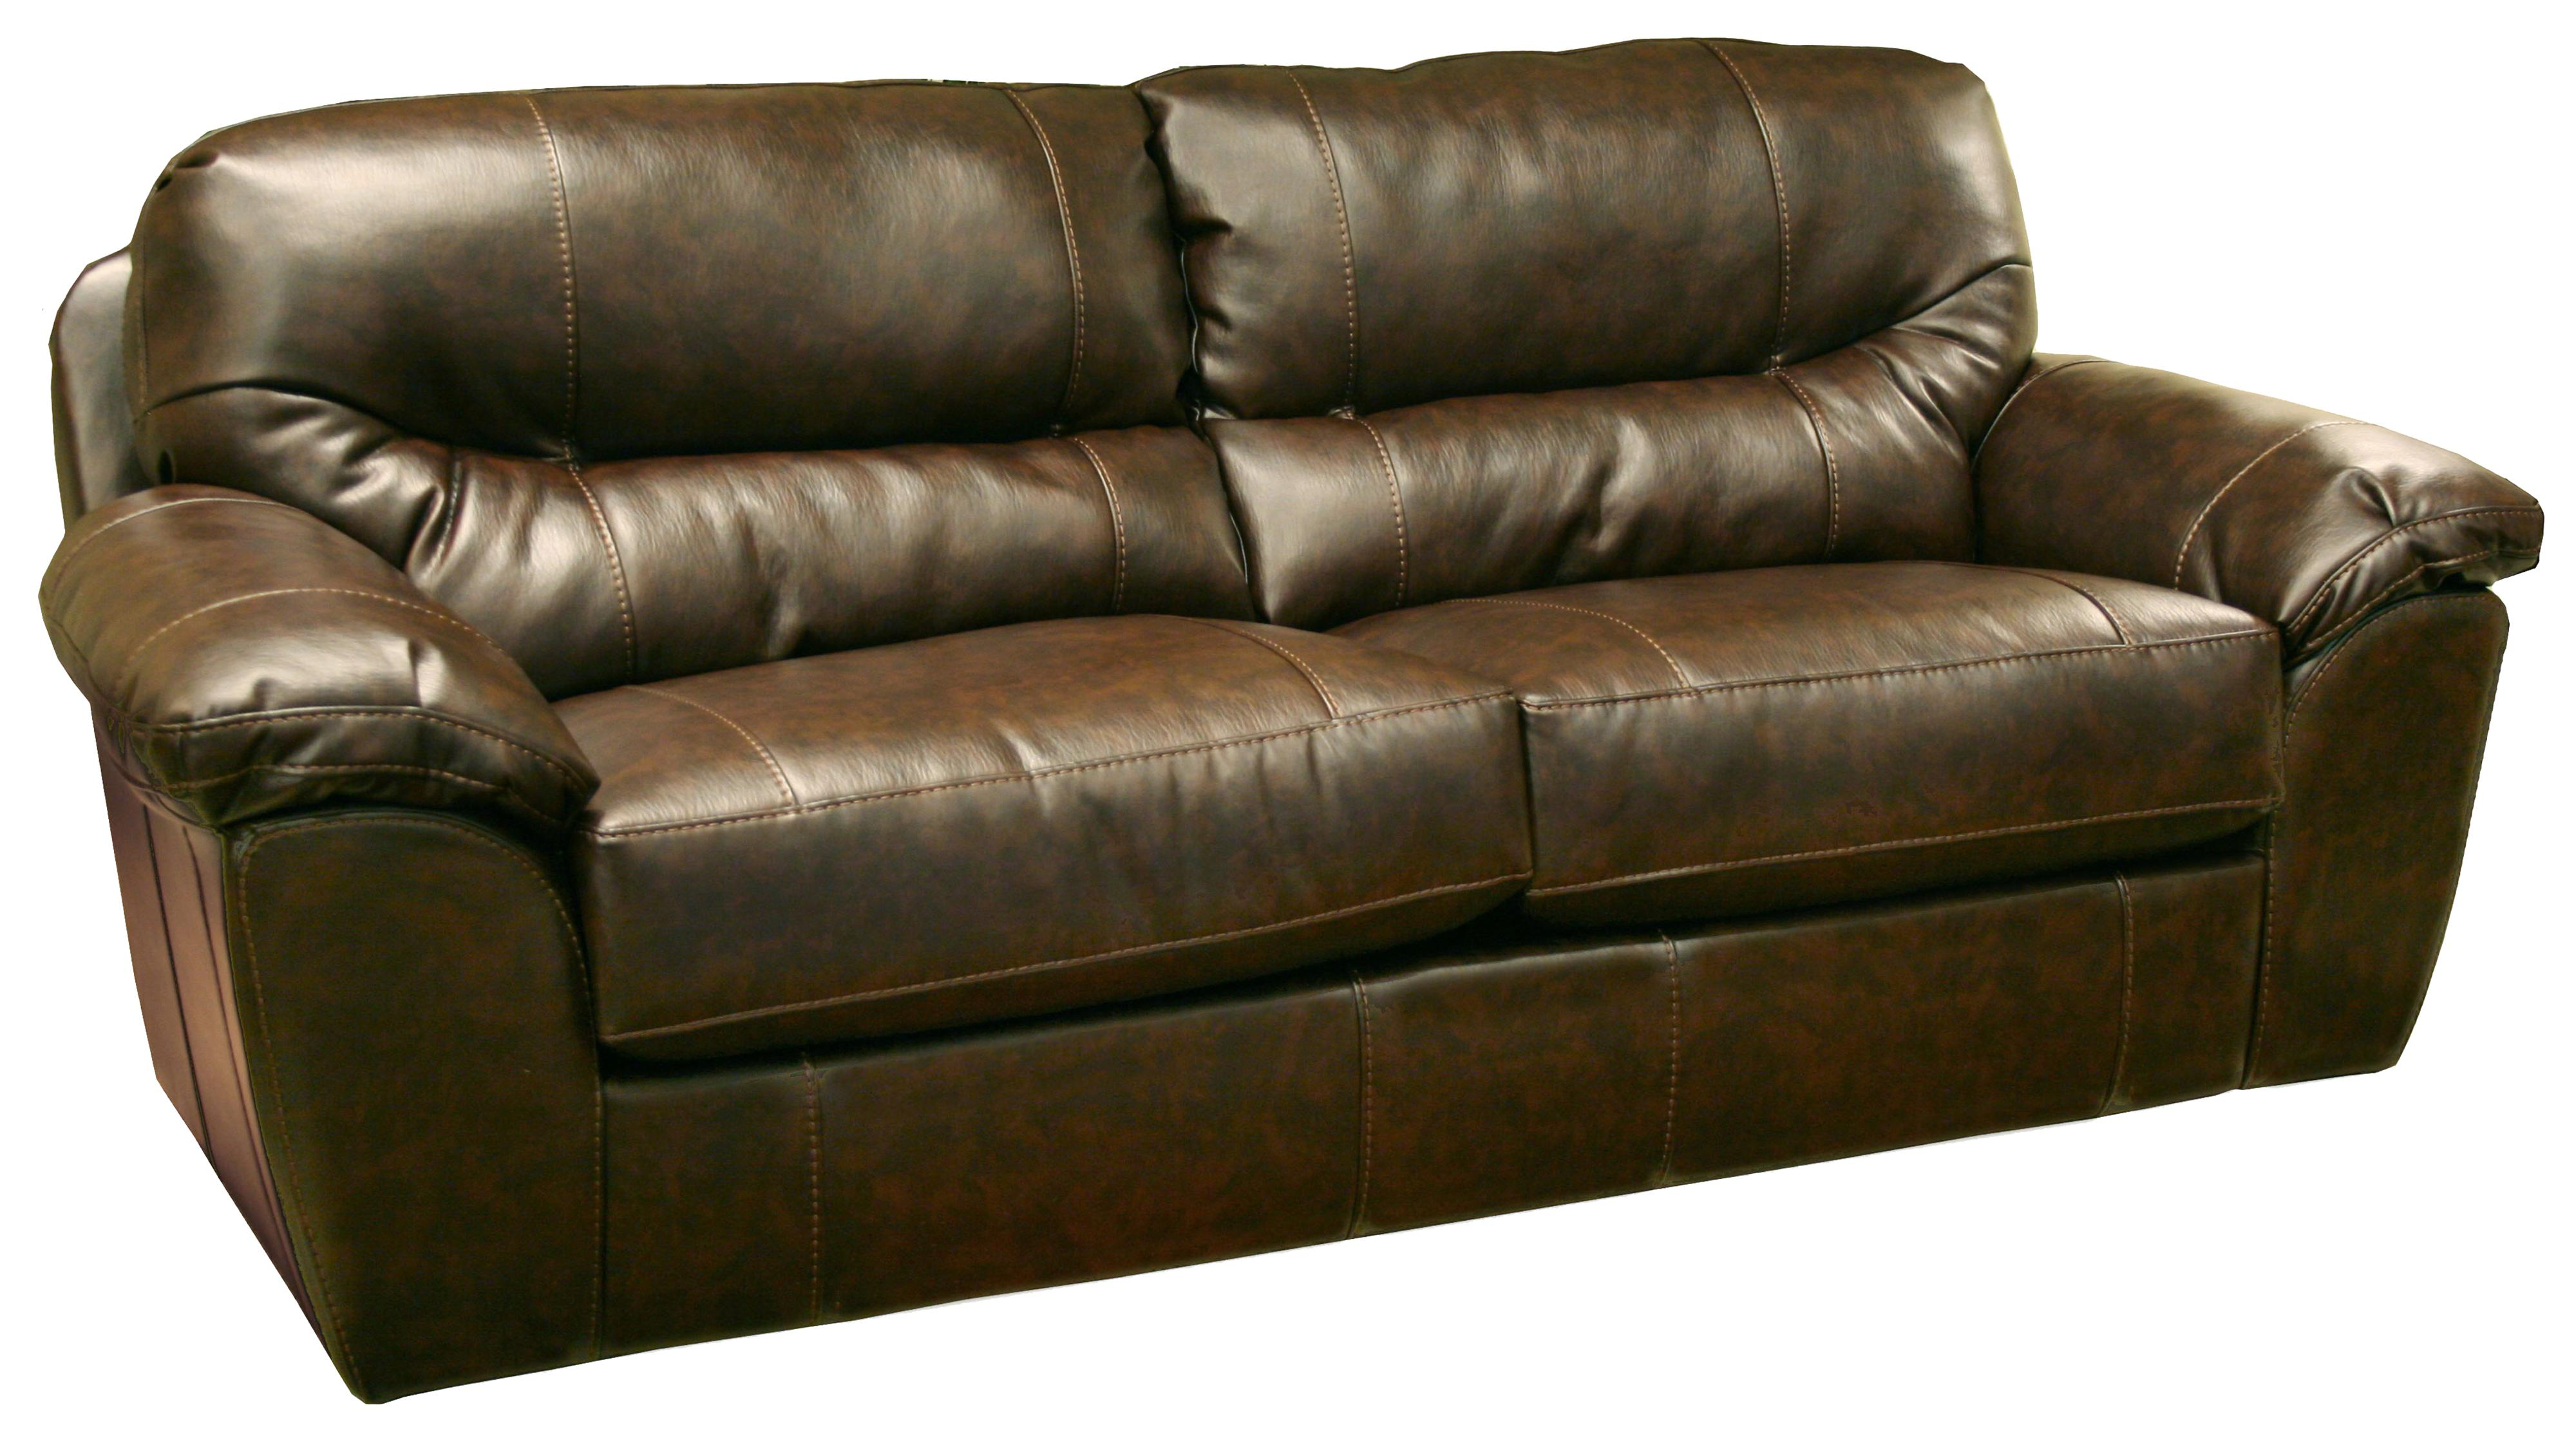 Brantley casual and comfortable family room sofa sleeper for Sectional sofas wolf furniture